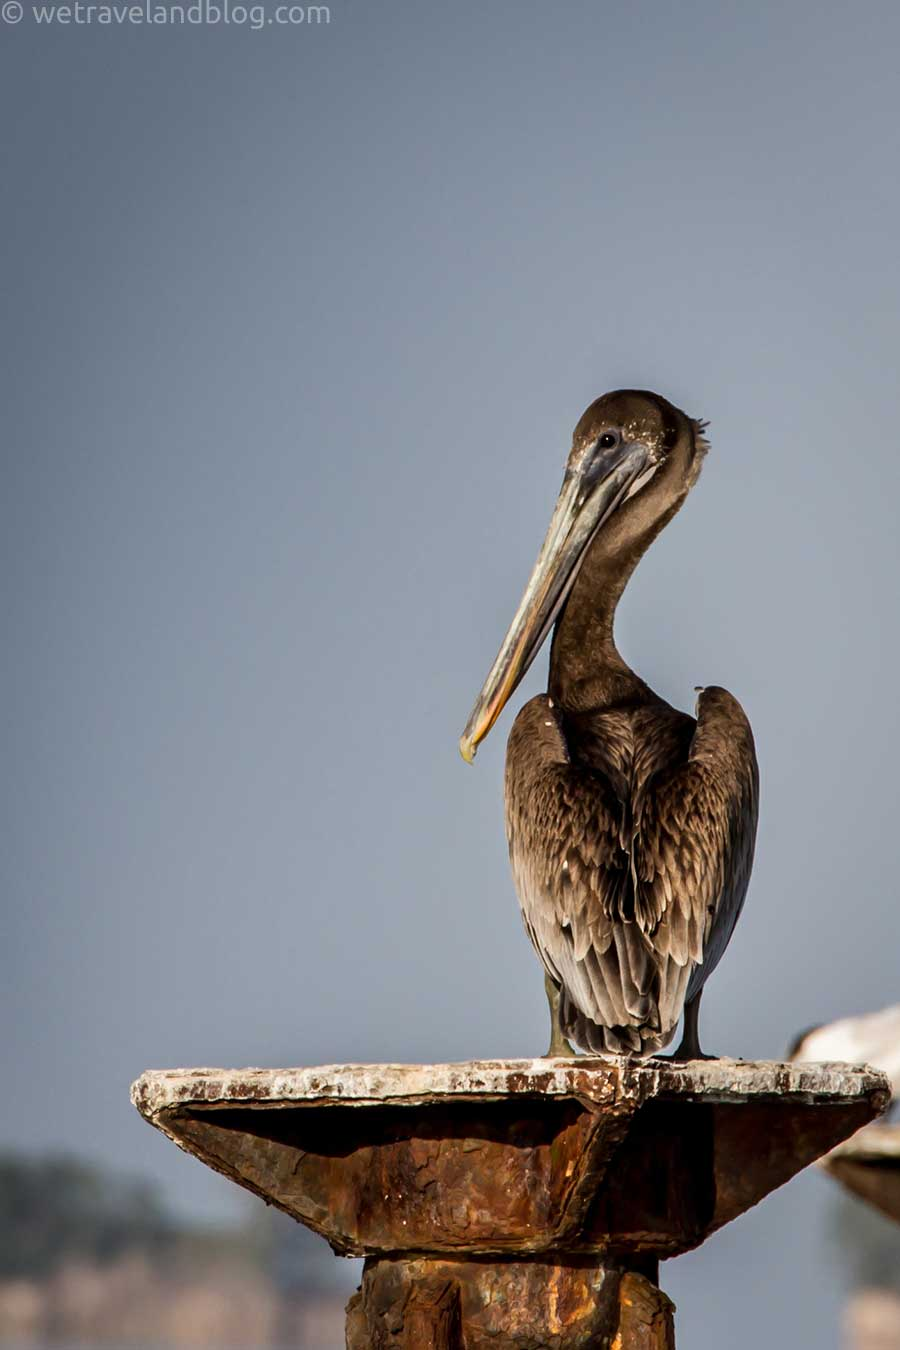 but my favorite by far are the pelicans.